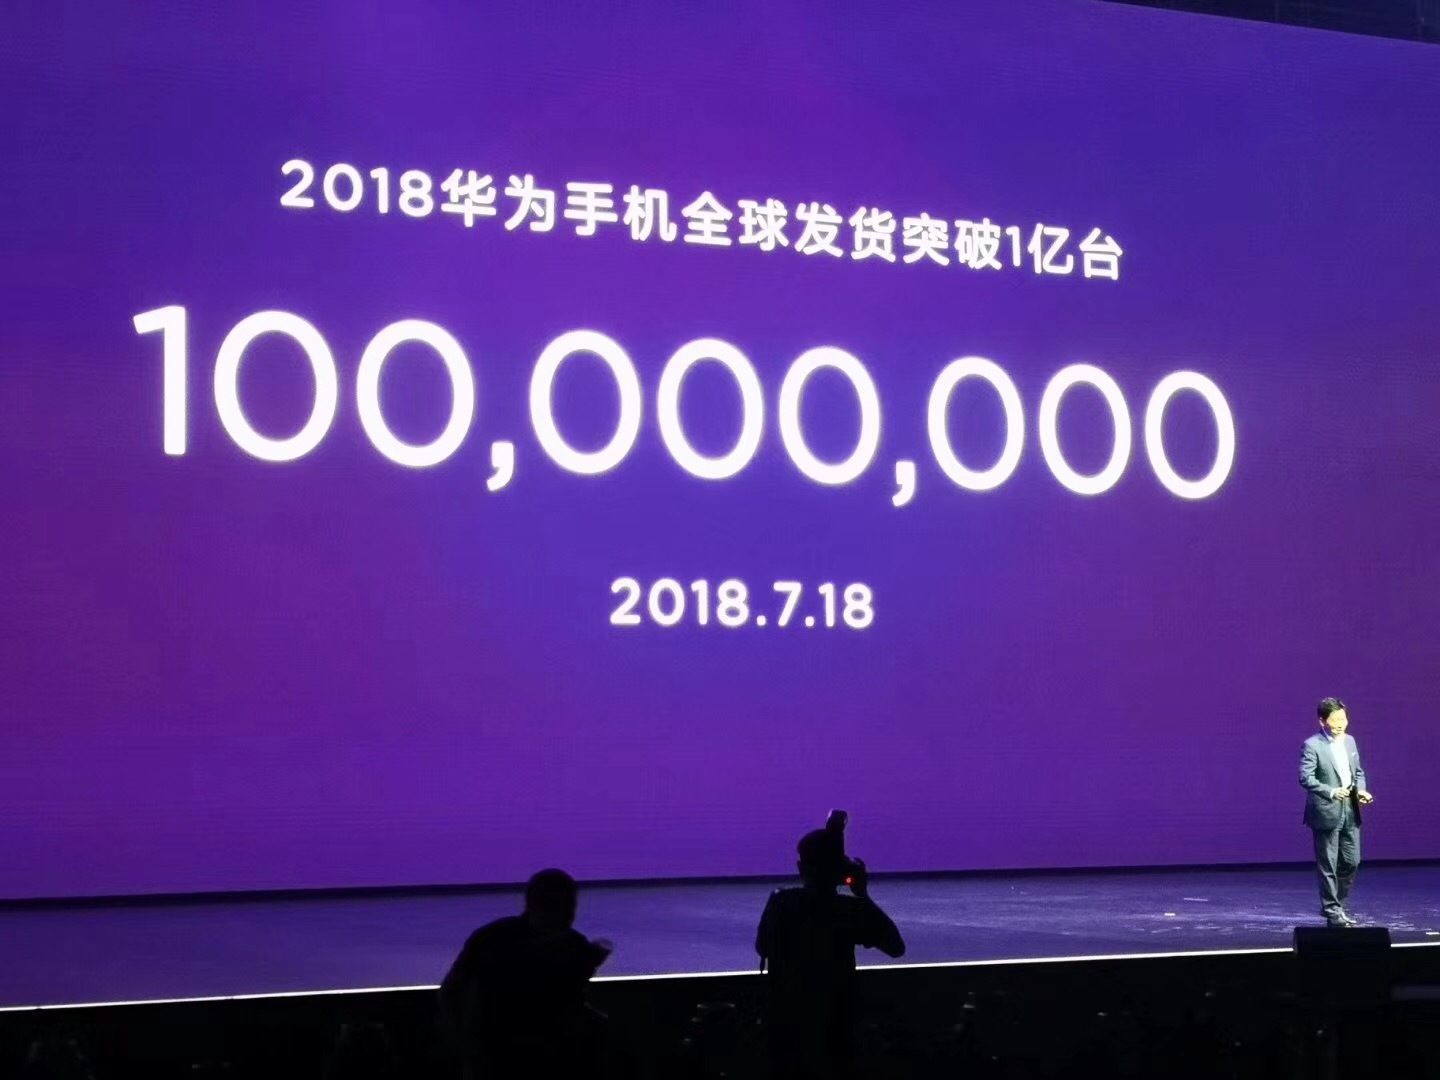 huawei sold 100 milion devices